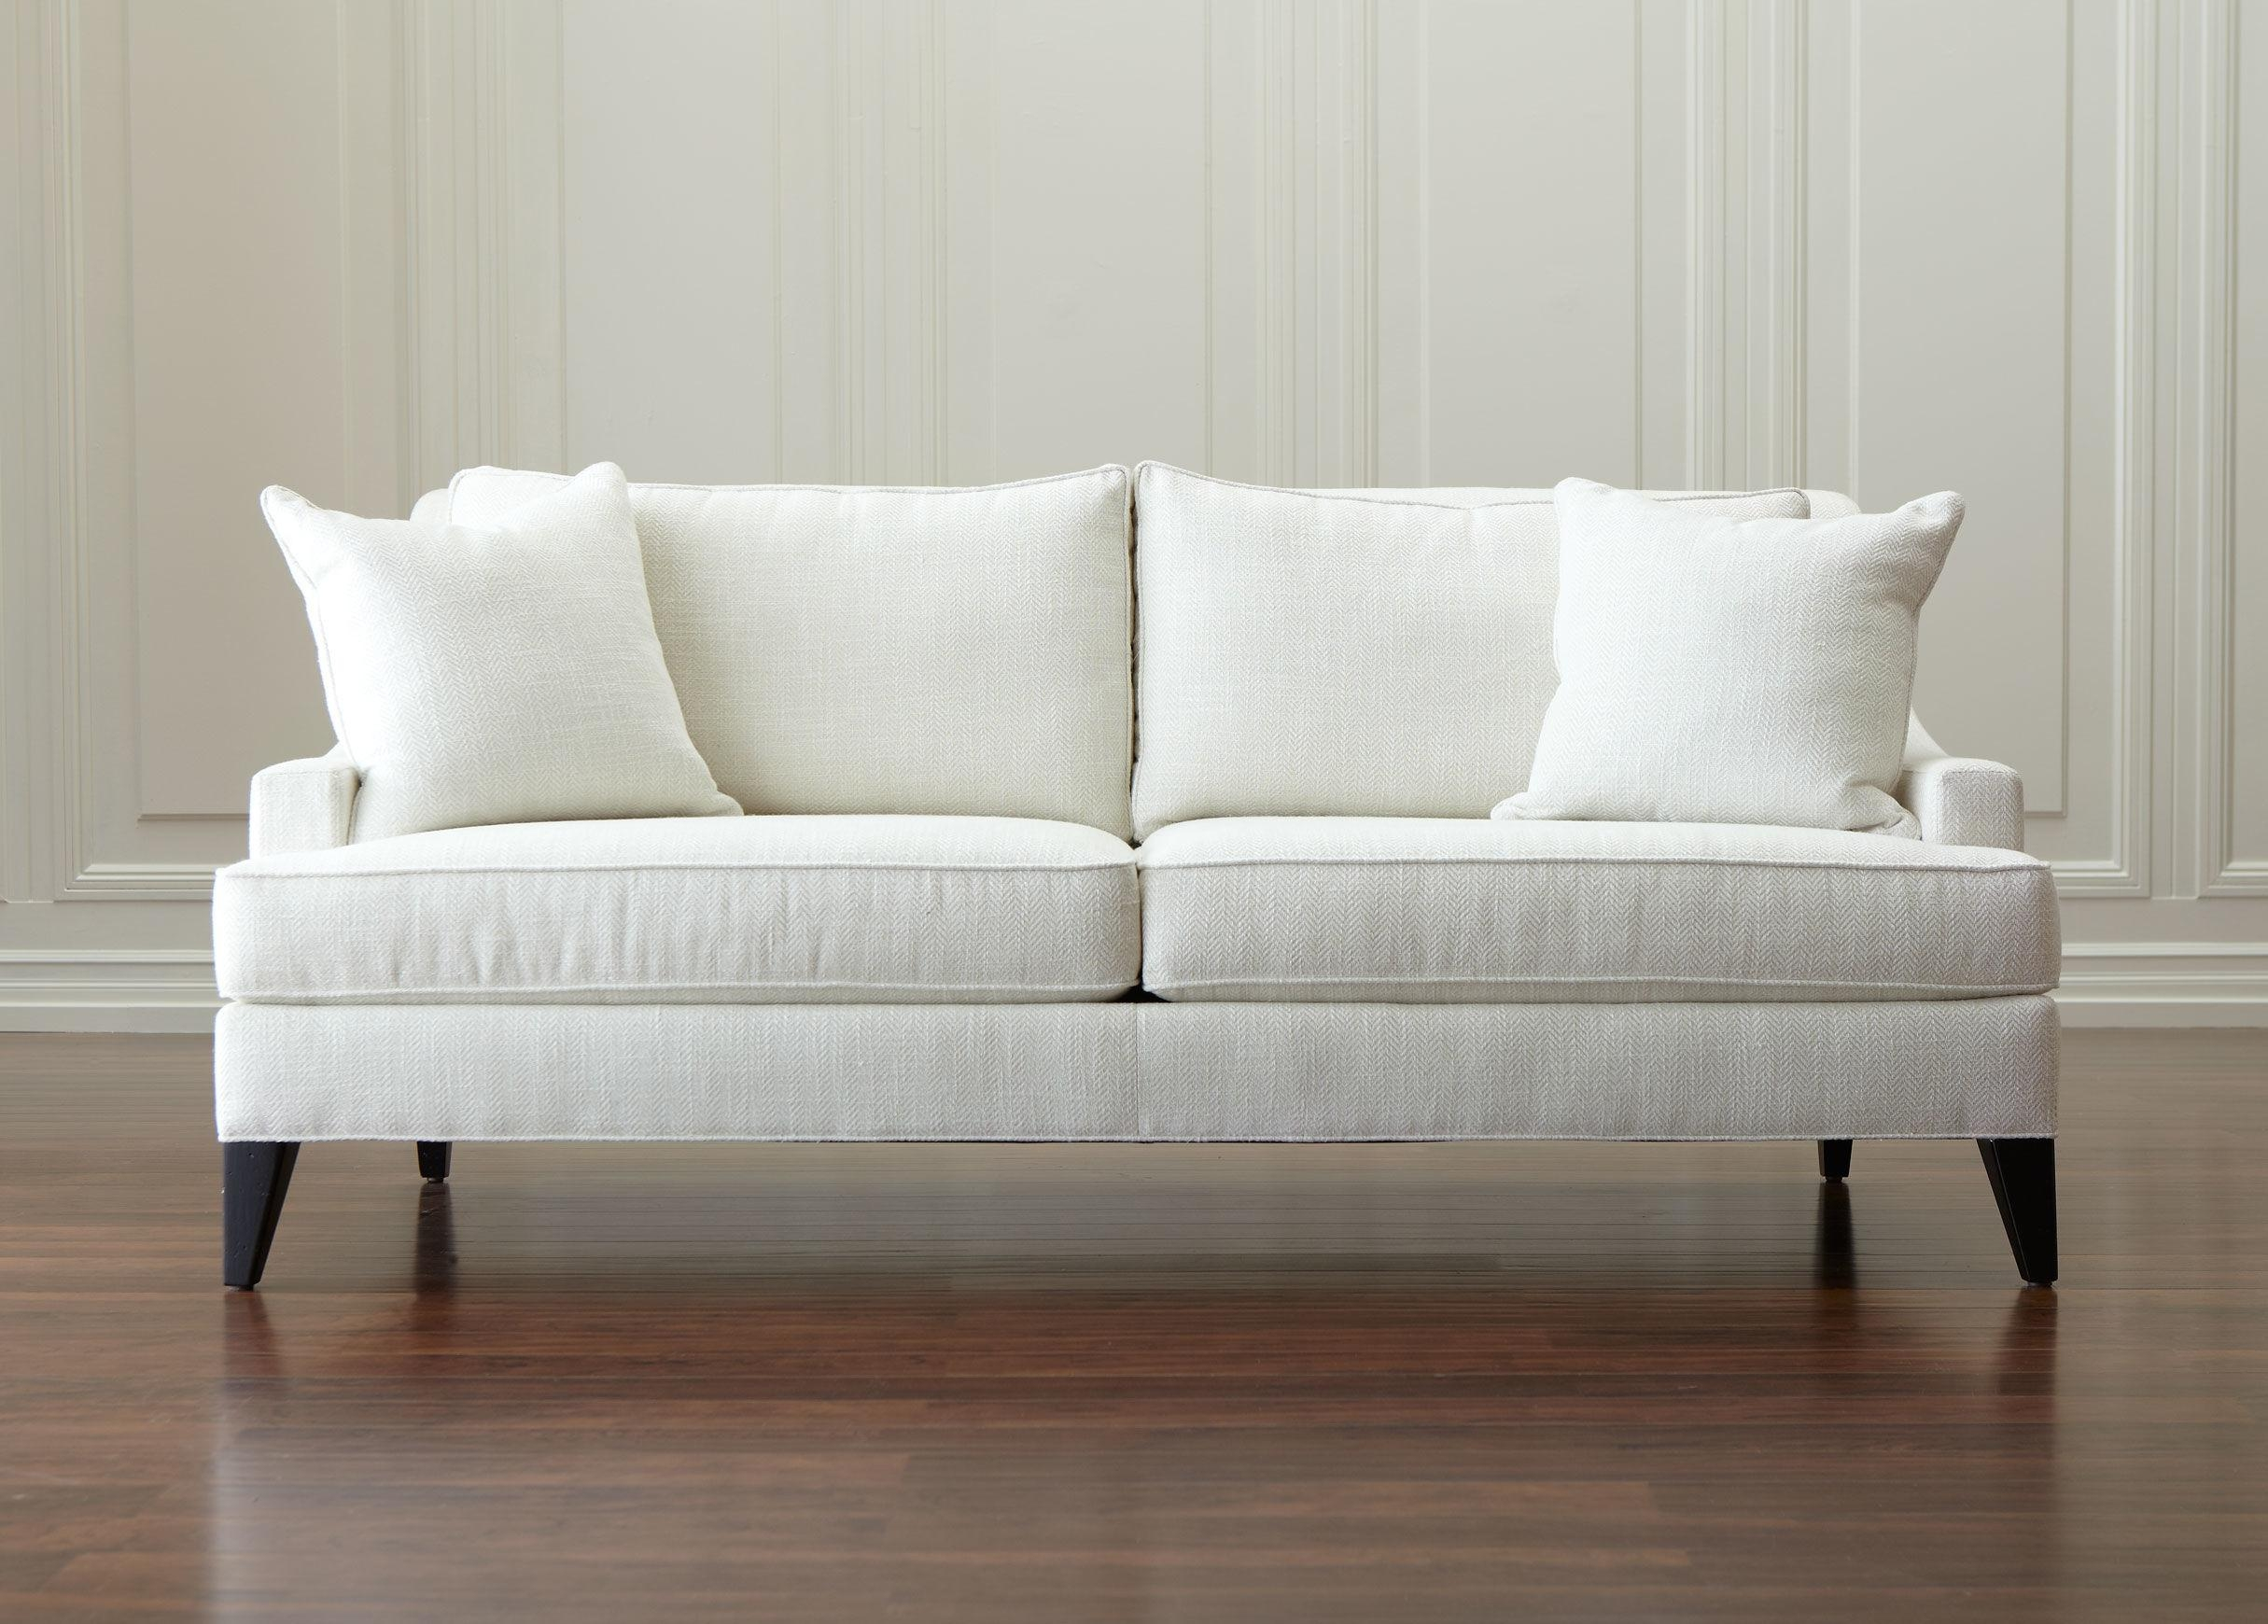 Best Ethan Allen Sleeper Sofas | Homesfeed Pertaining To Short Sofas (Image 2 of 20)